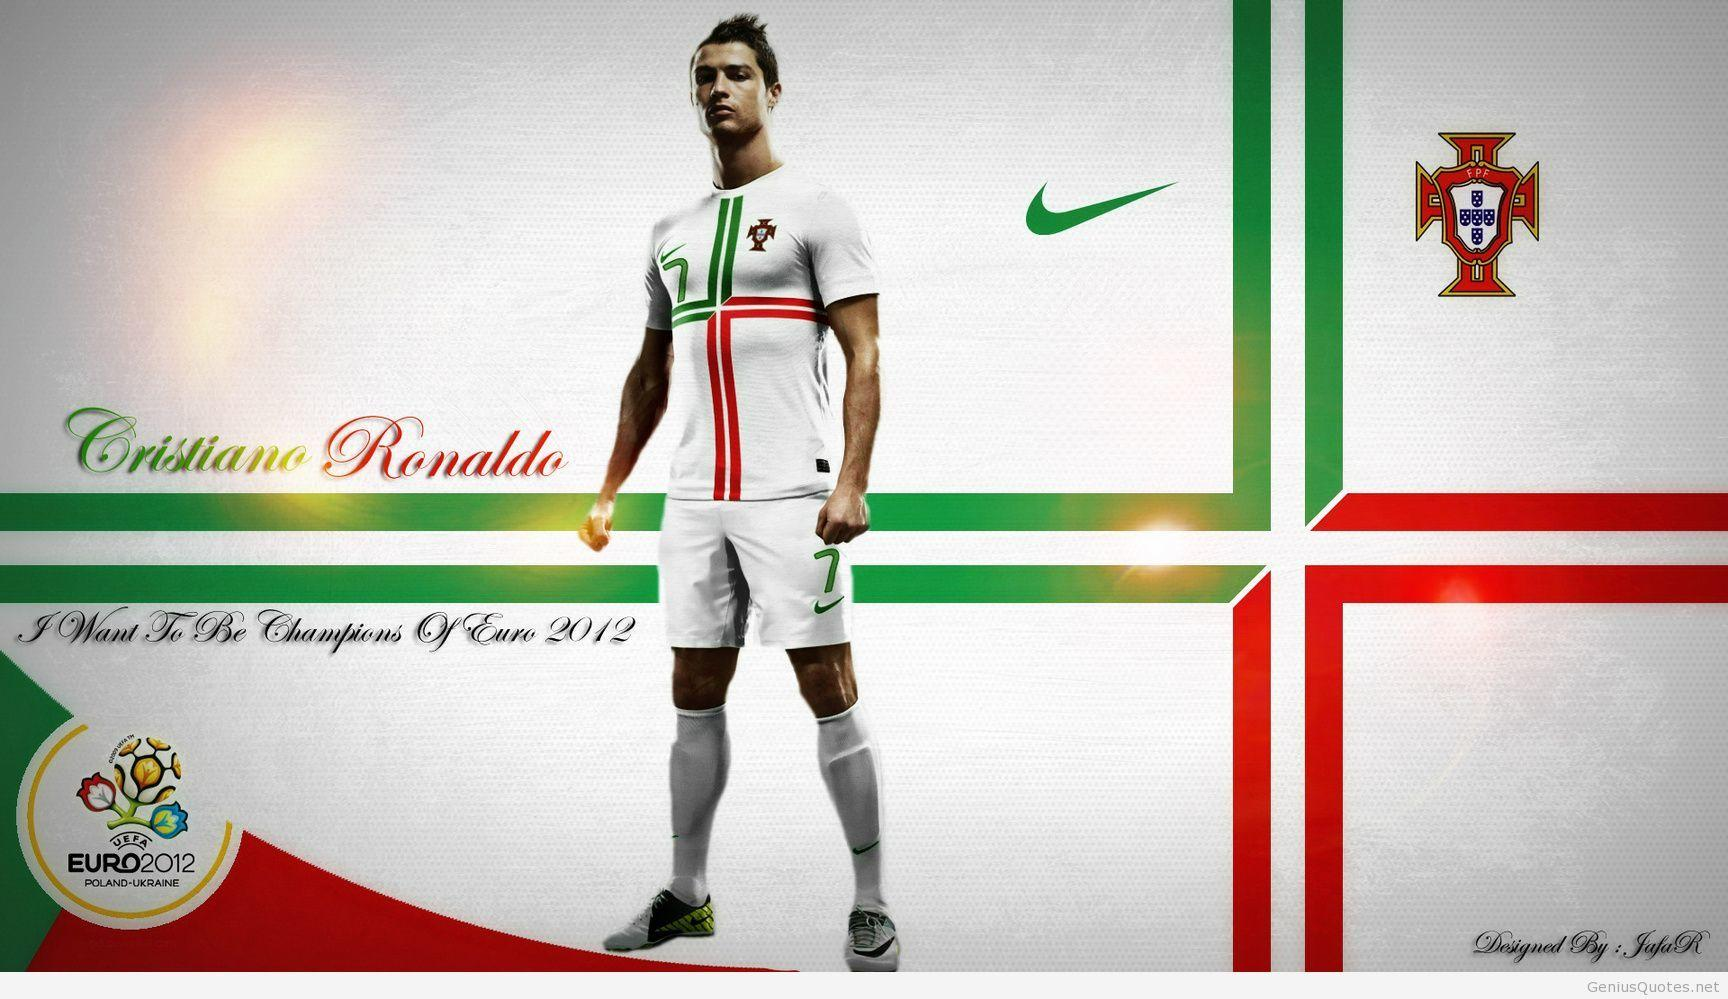 Cristiano Ronaldo fifa world cup 2014 Portugal wallpapers hd b9d387156